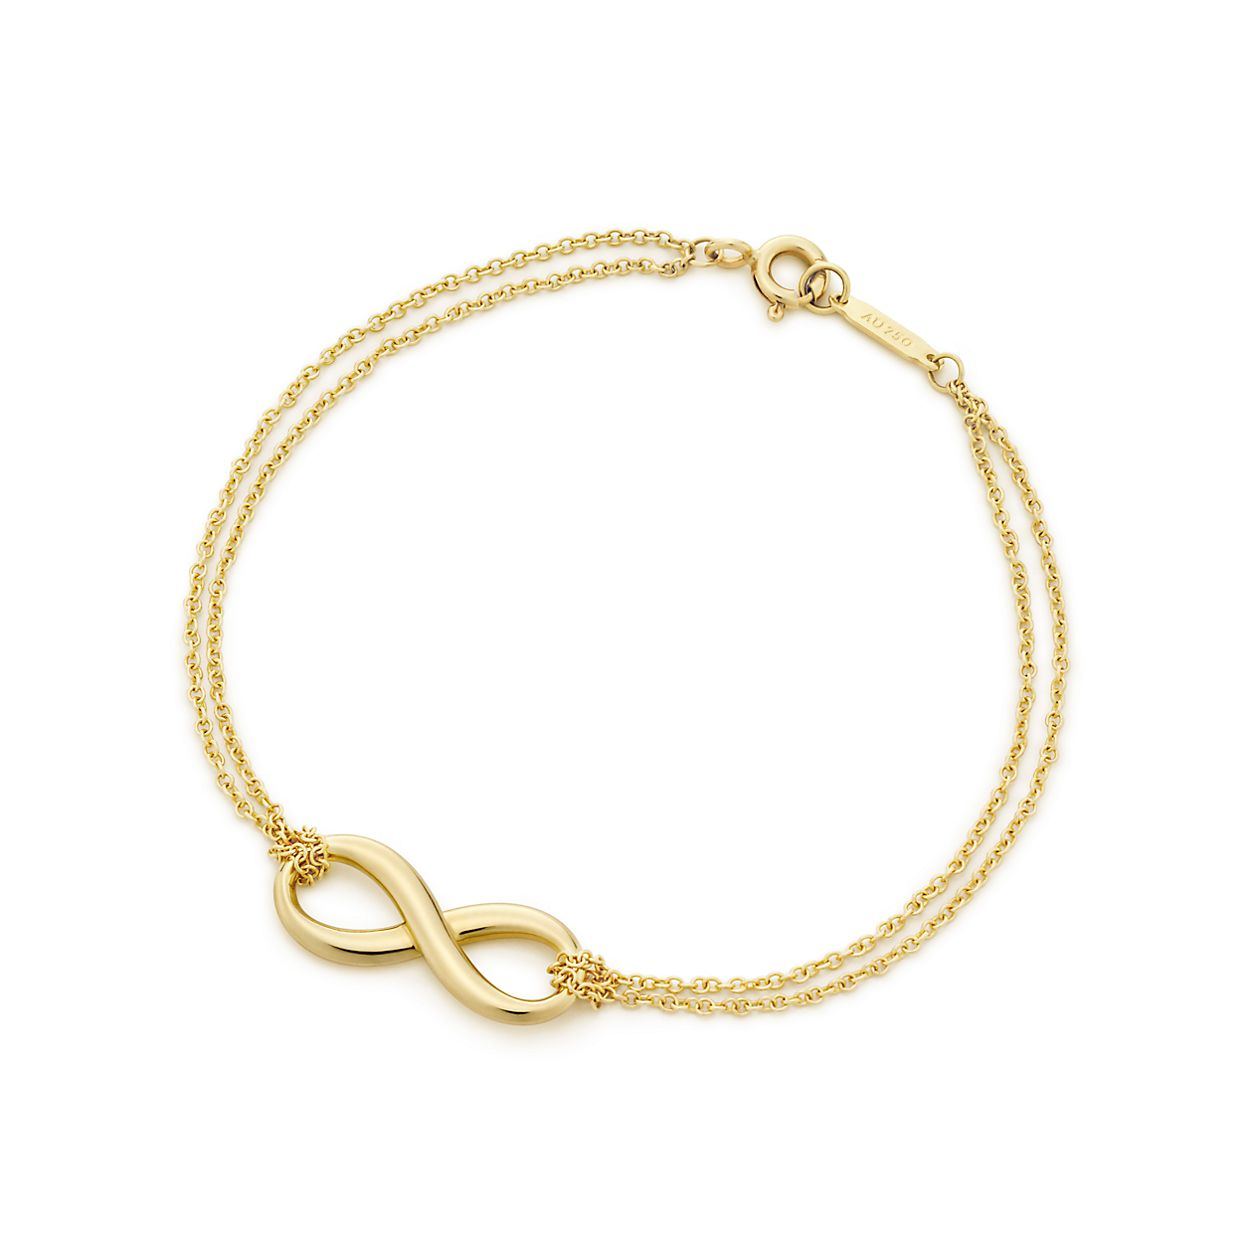 rope shop gold yellow bracelets caellisar com bracelet